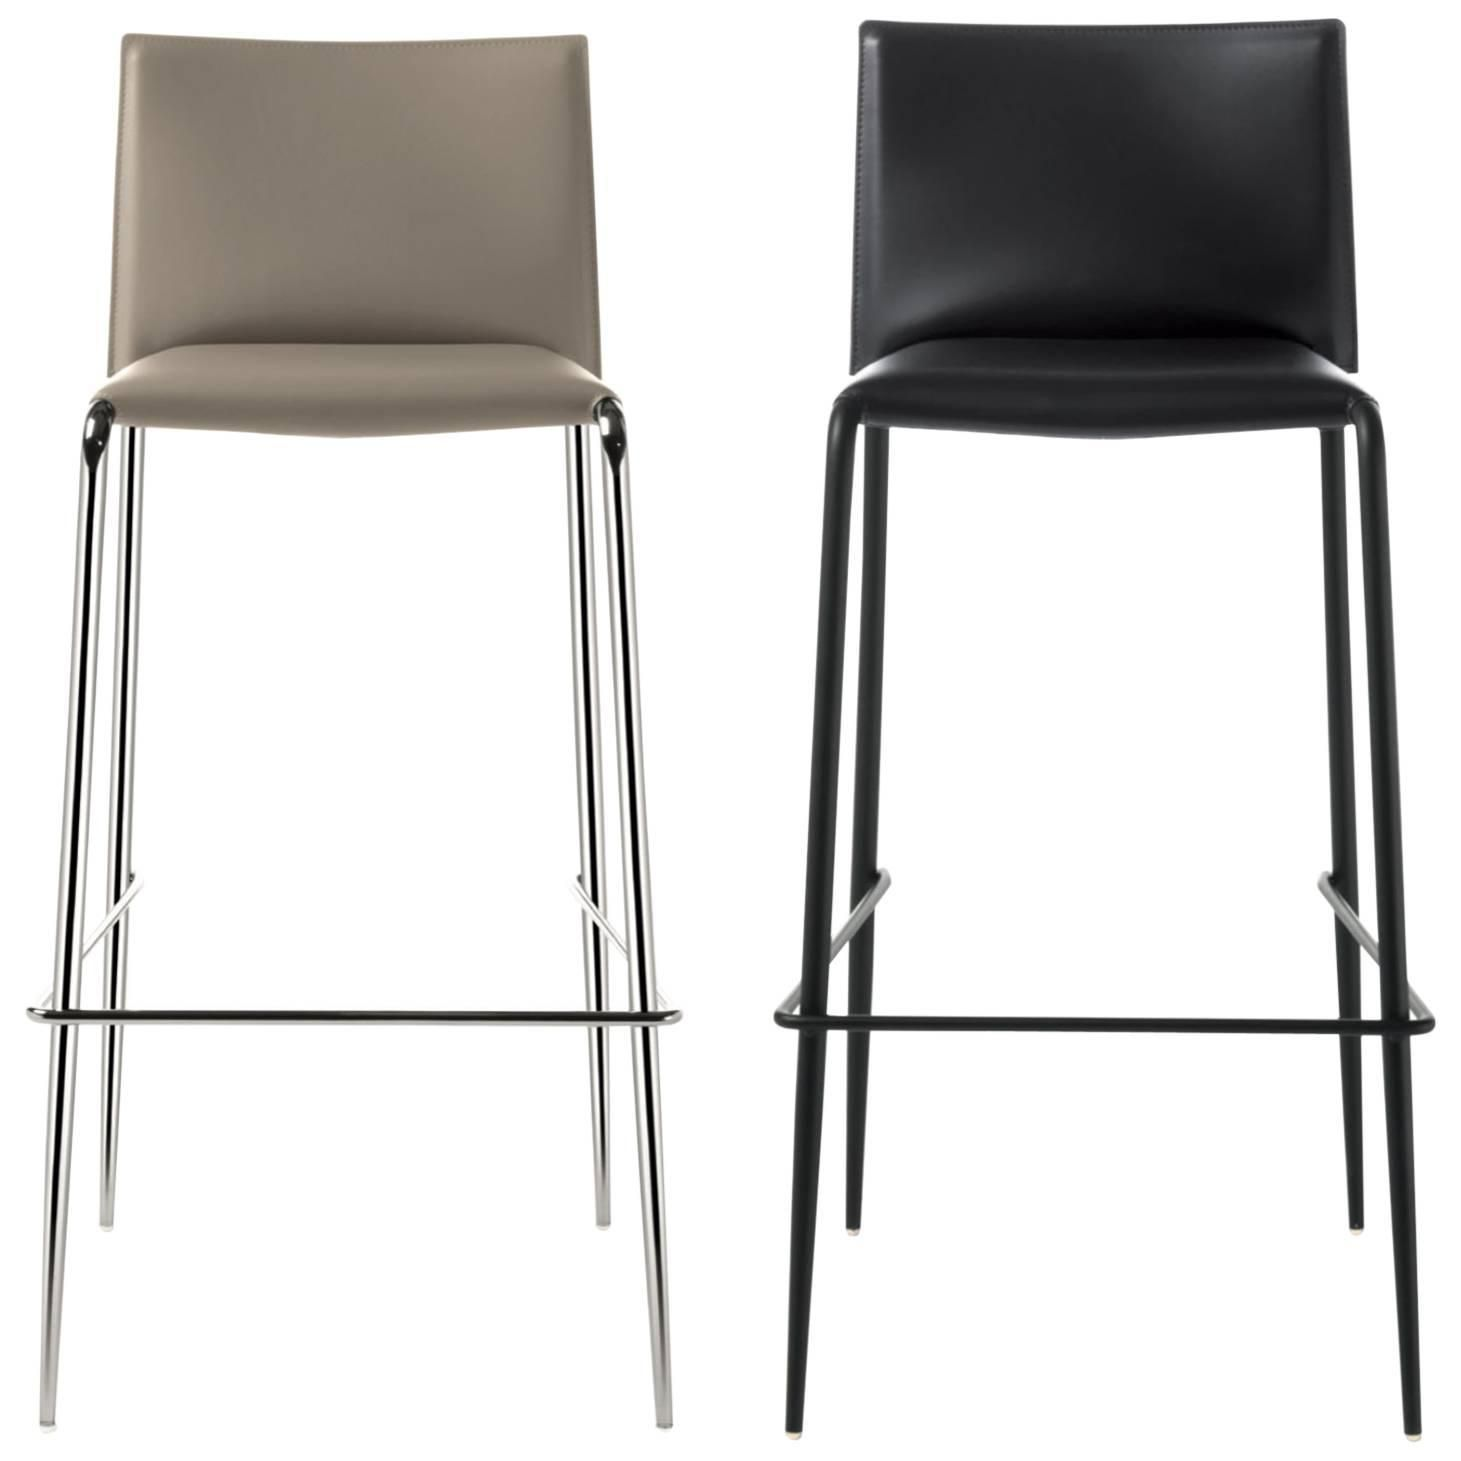 abc16c0425f9 Italian Modern Bar Stool Made of Leather, Made in Italy, New 30 Colors  Available